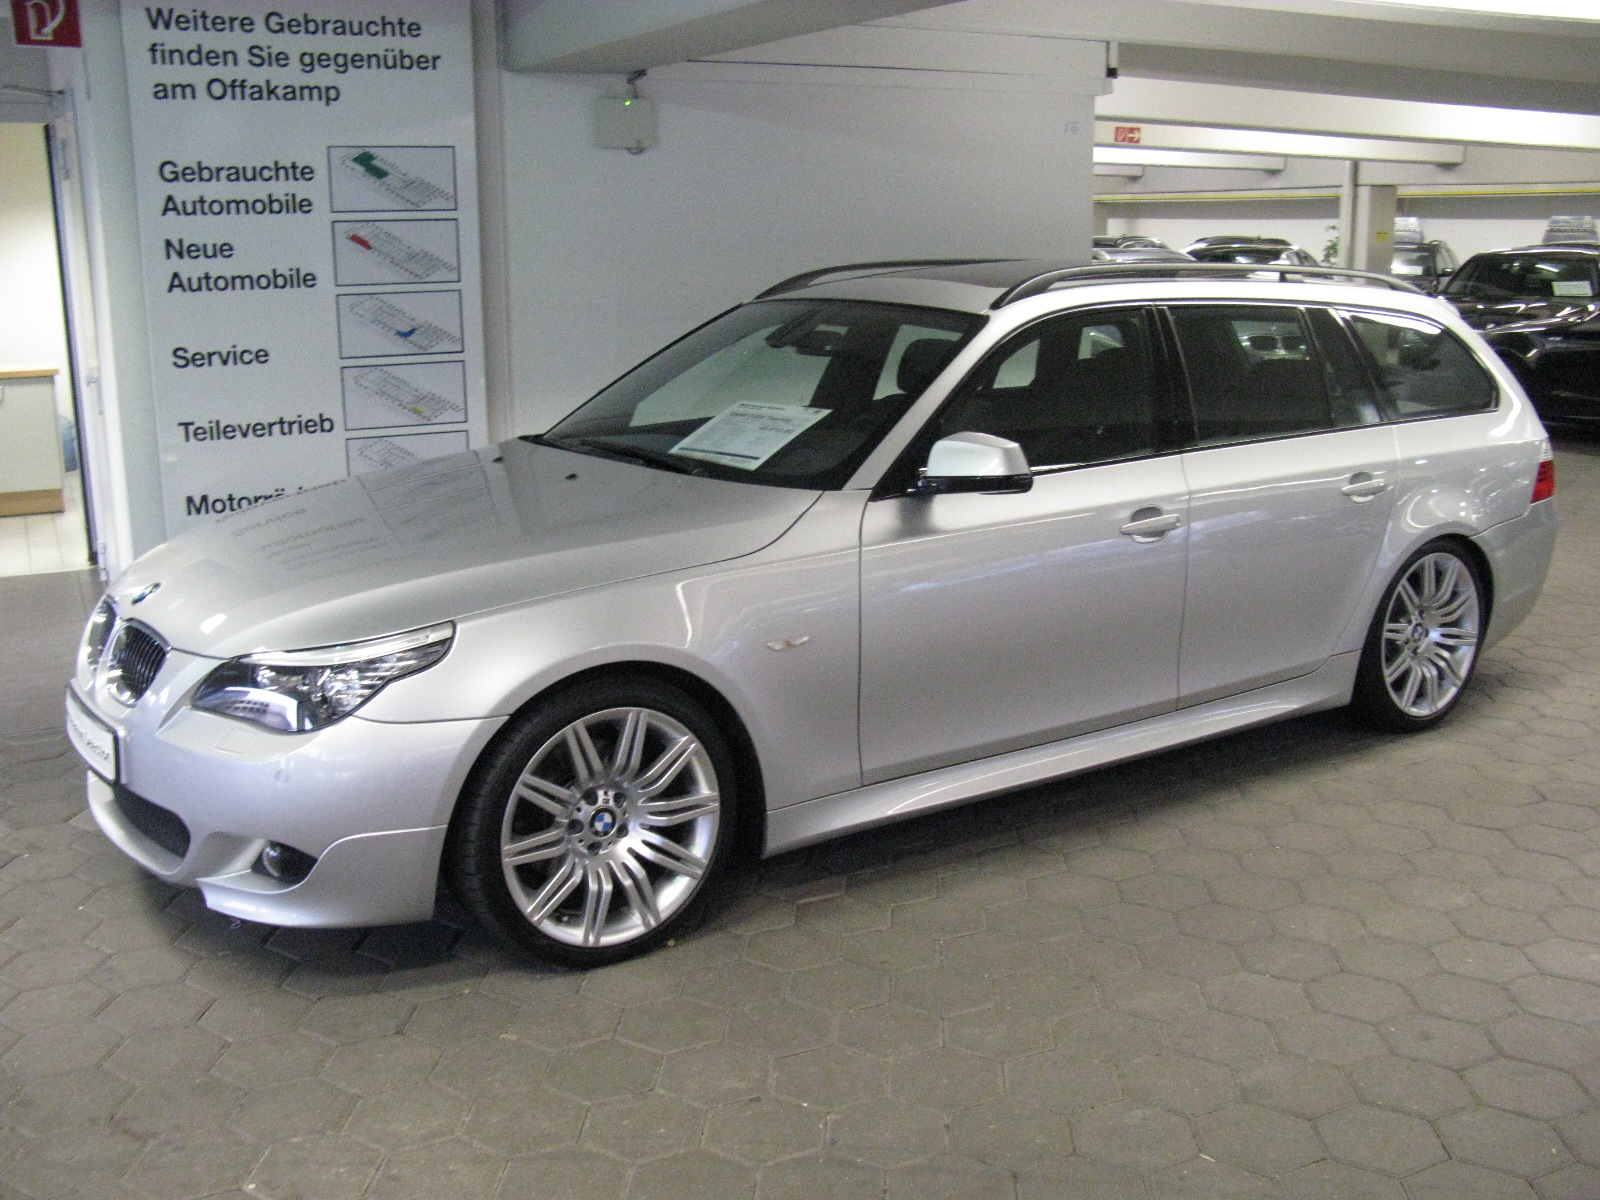 File:BMW 530d Touring M Sport E61 (6838218201).jpg - Wikimedia Commons